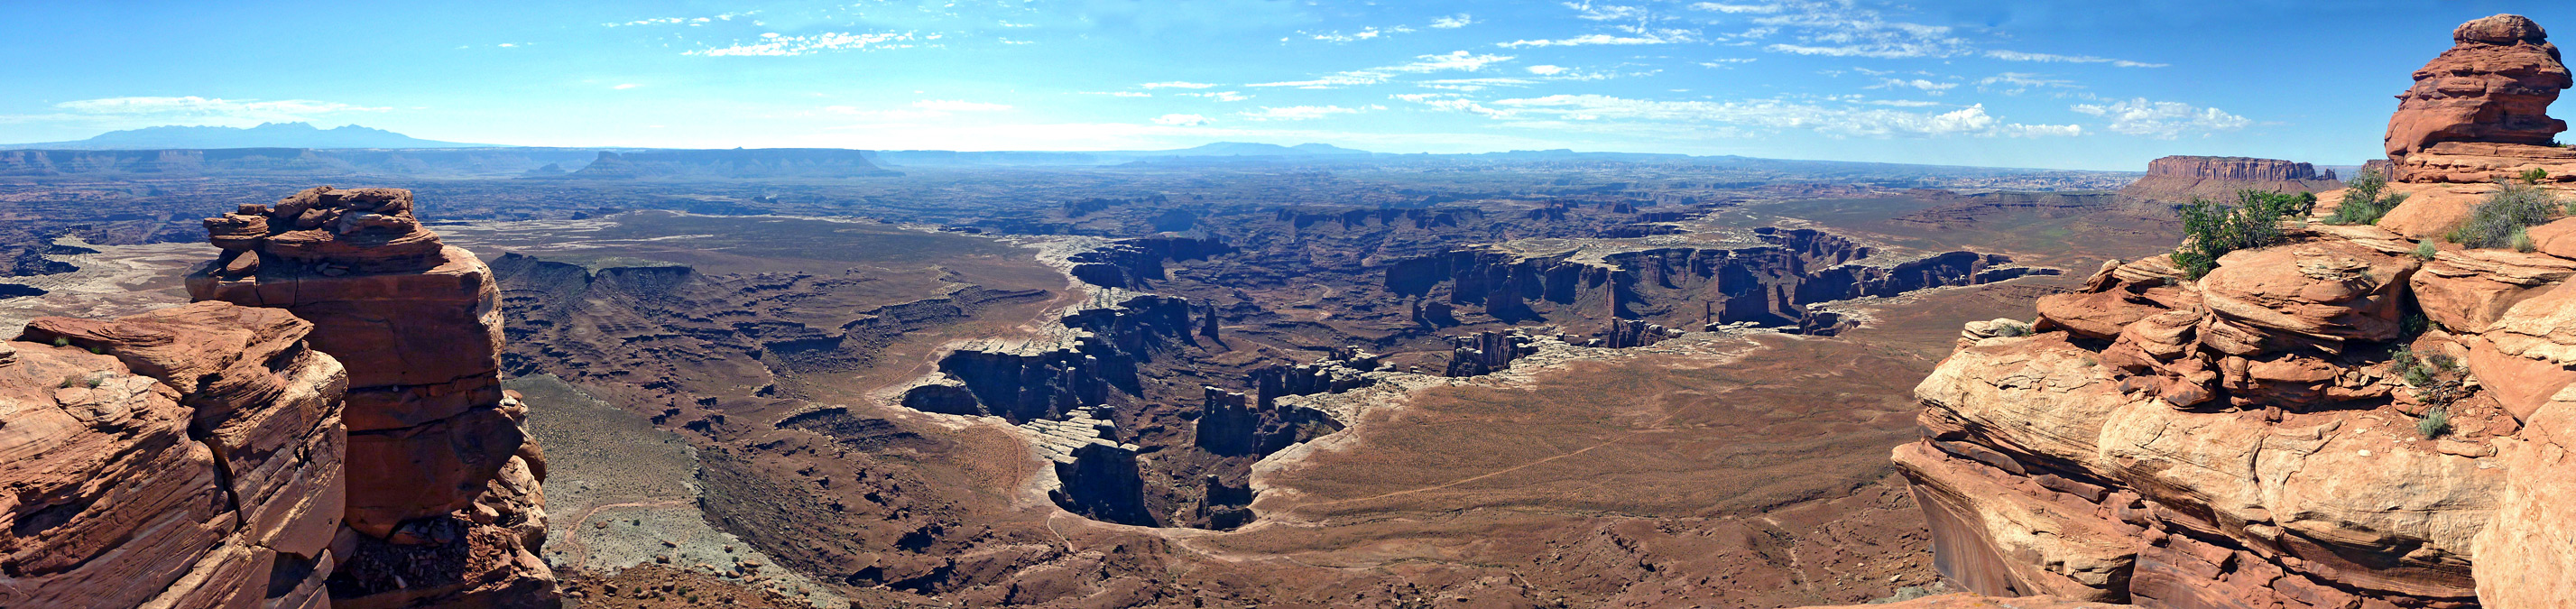 Monument Basin from White Rim Overlook